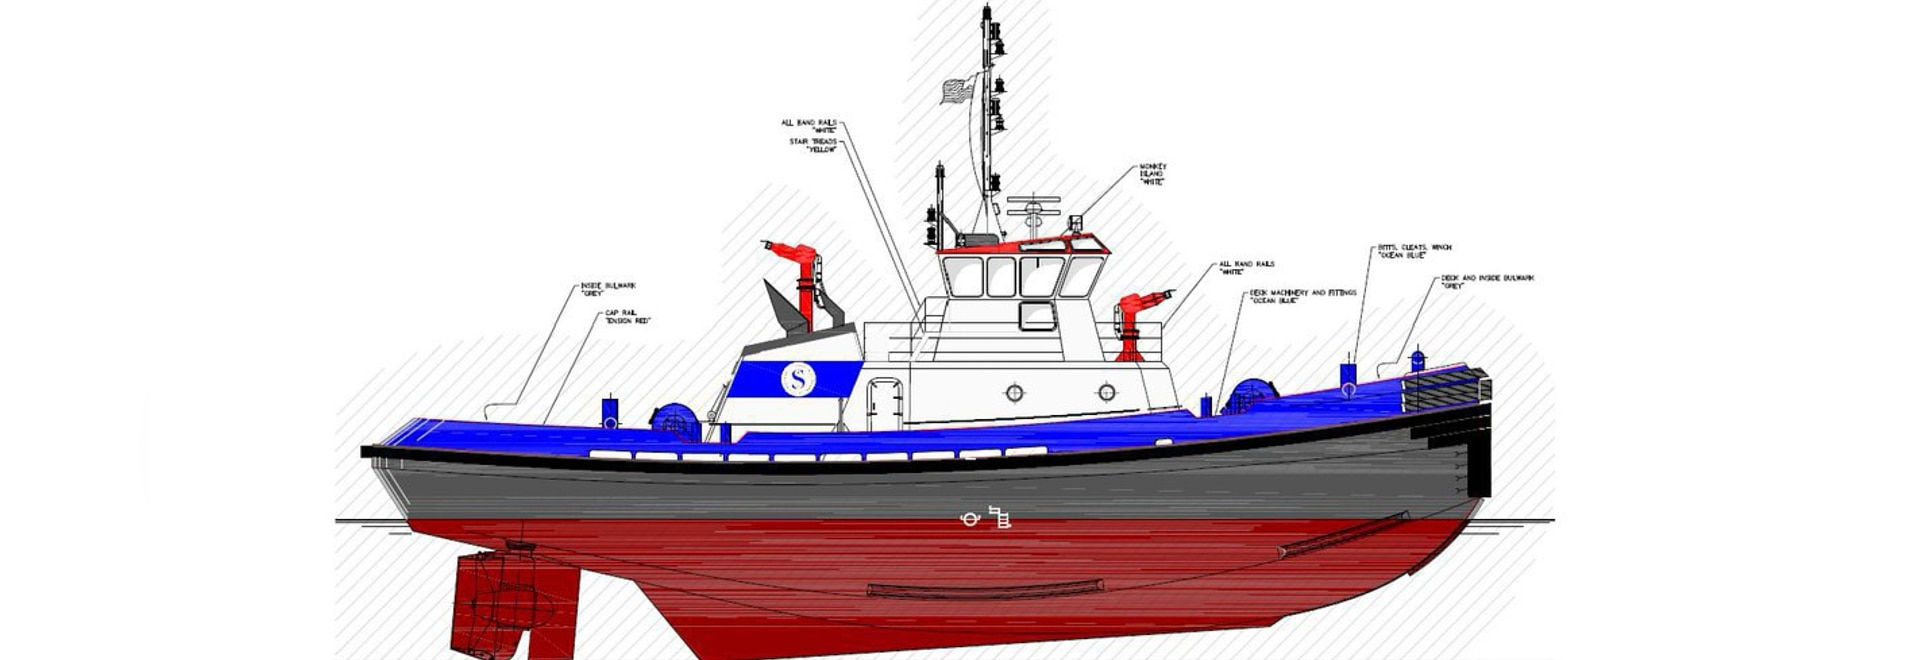 The integrated bridge systems will feature on two upgraded ART 90-98US tugs, and two new Rapport 3000.